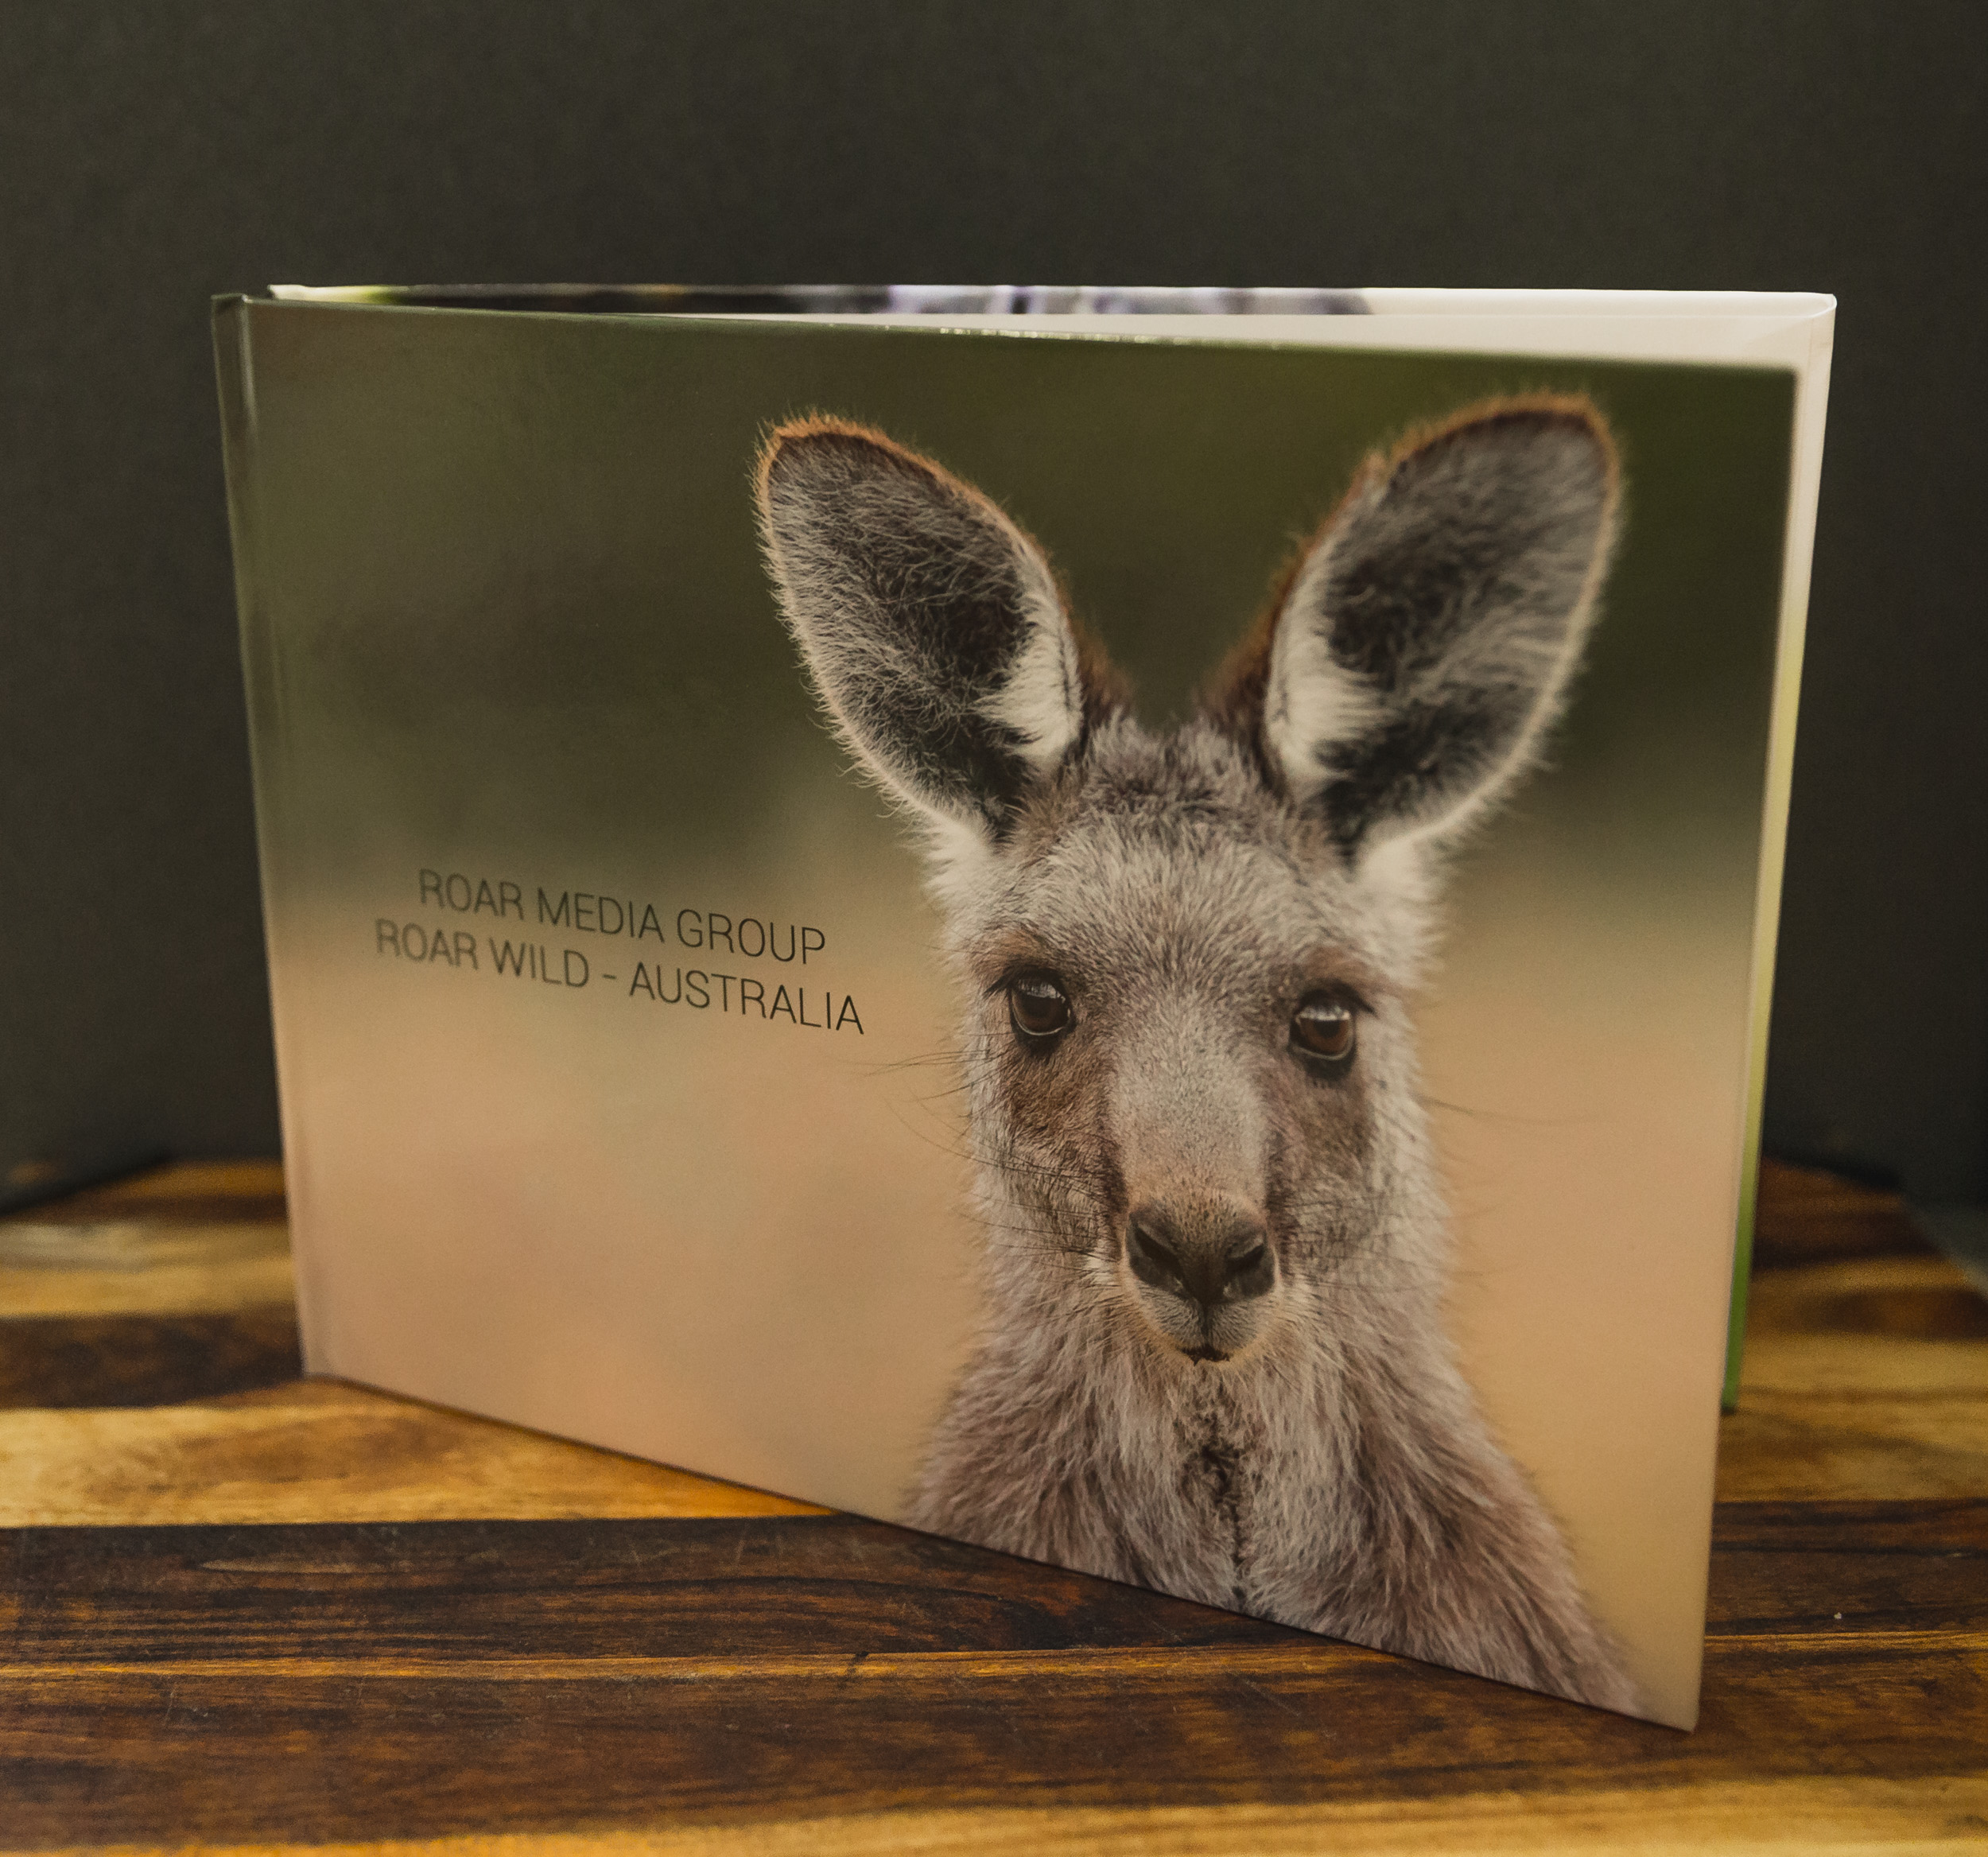 Roar Media Group Roar Wild Australia Coffee Table Book Limited Edition Roar Media Group